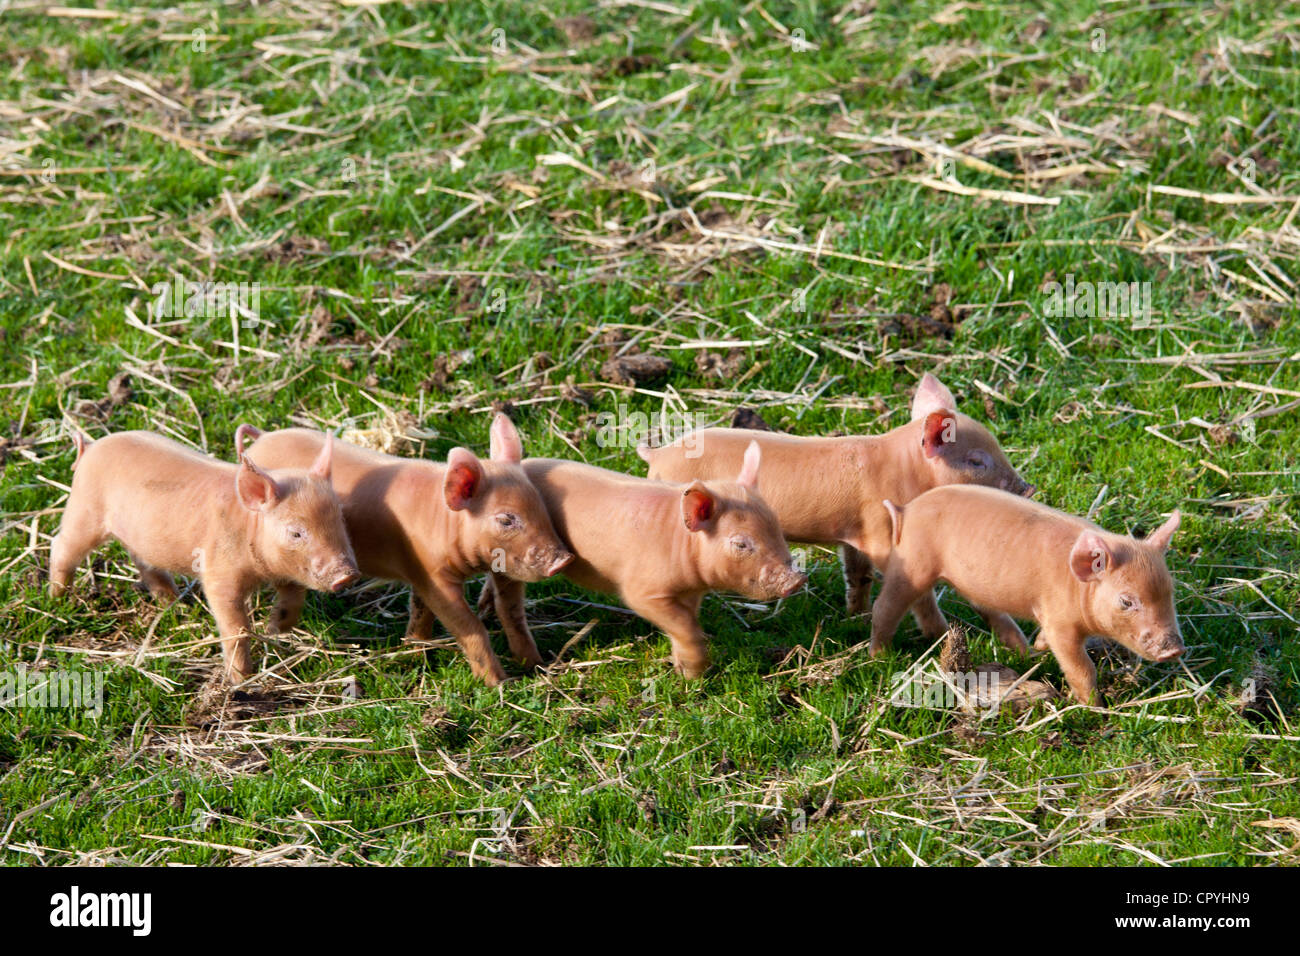 Tamworth piglets at the Cotswold Farm Park at Guiting Power in the Cotswolds, Gloucestershire, UK - Stock Image